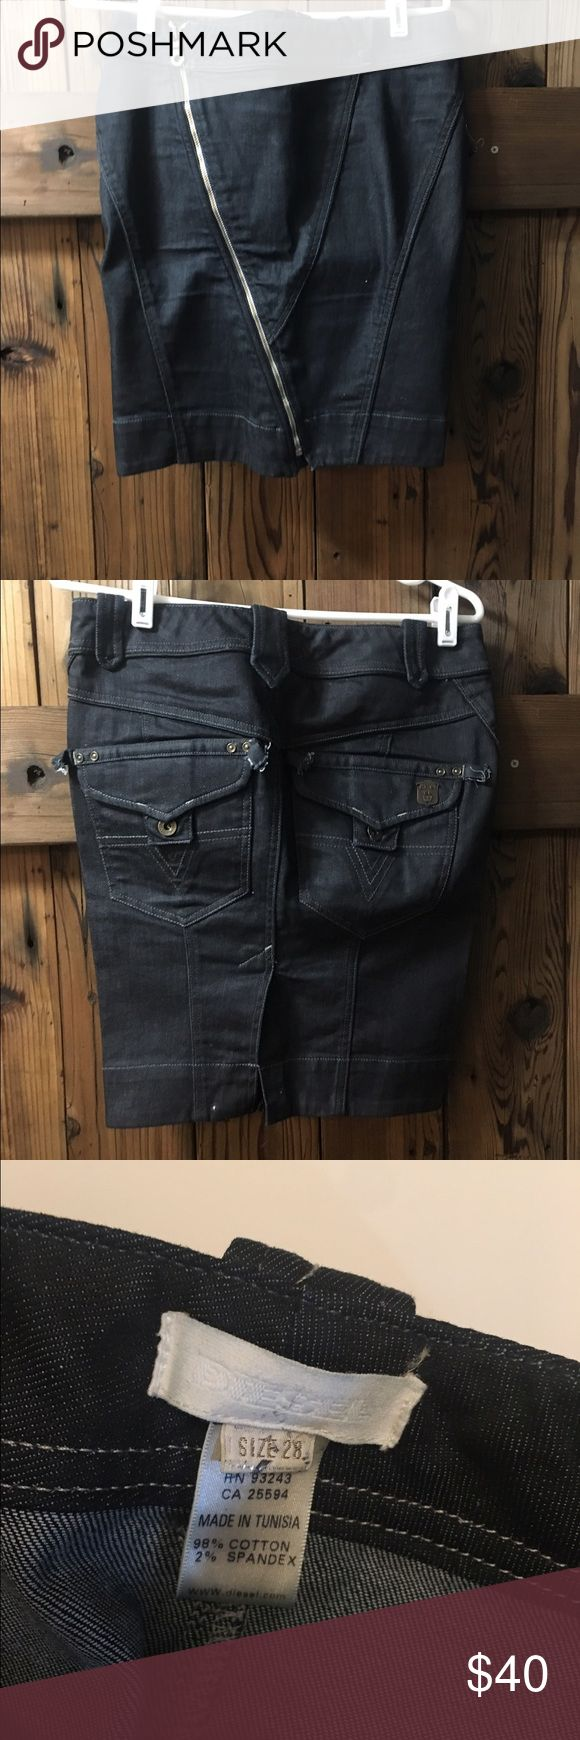 Diesel denial zipper skirt size 28 Lots of detail with the zipper and pockets on this diesel skirt! Diesel Skirts Pencil